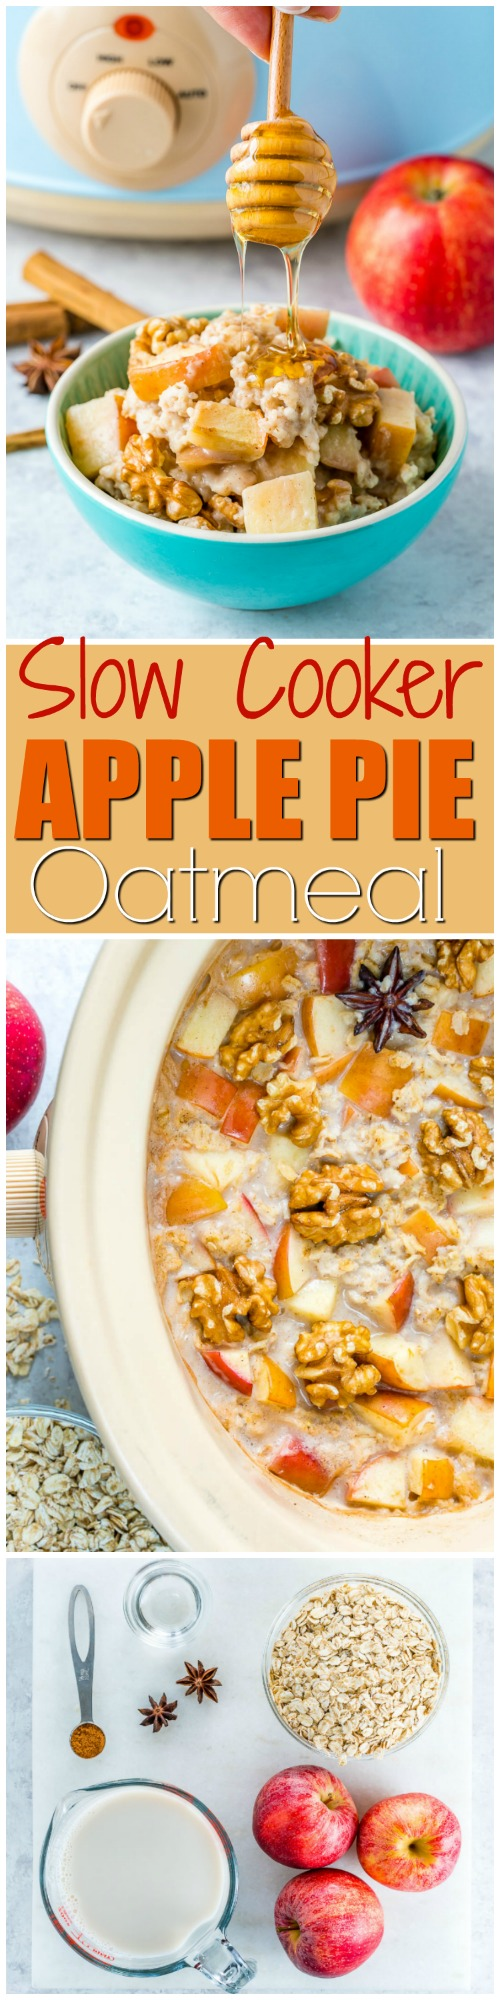 Slow Cooker Apple Pie Oatmeal for Clean Eating Breakfast